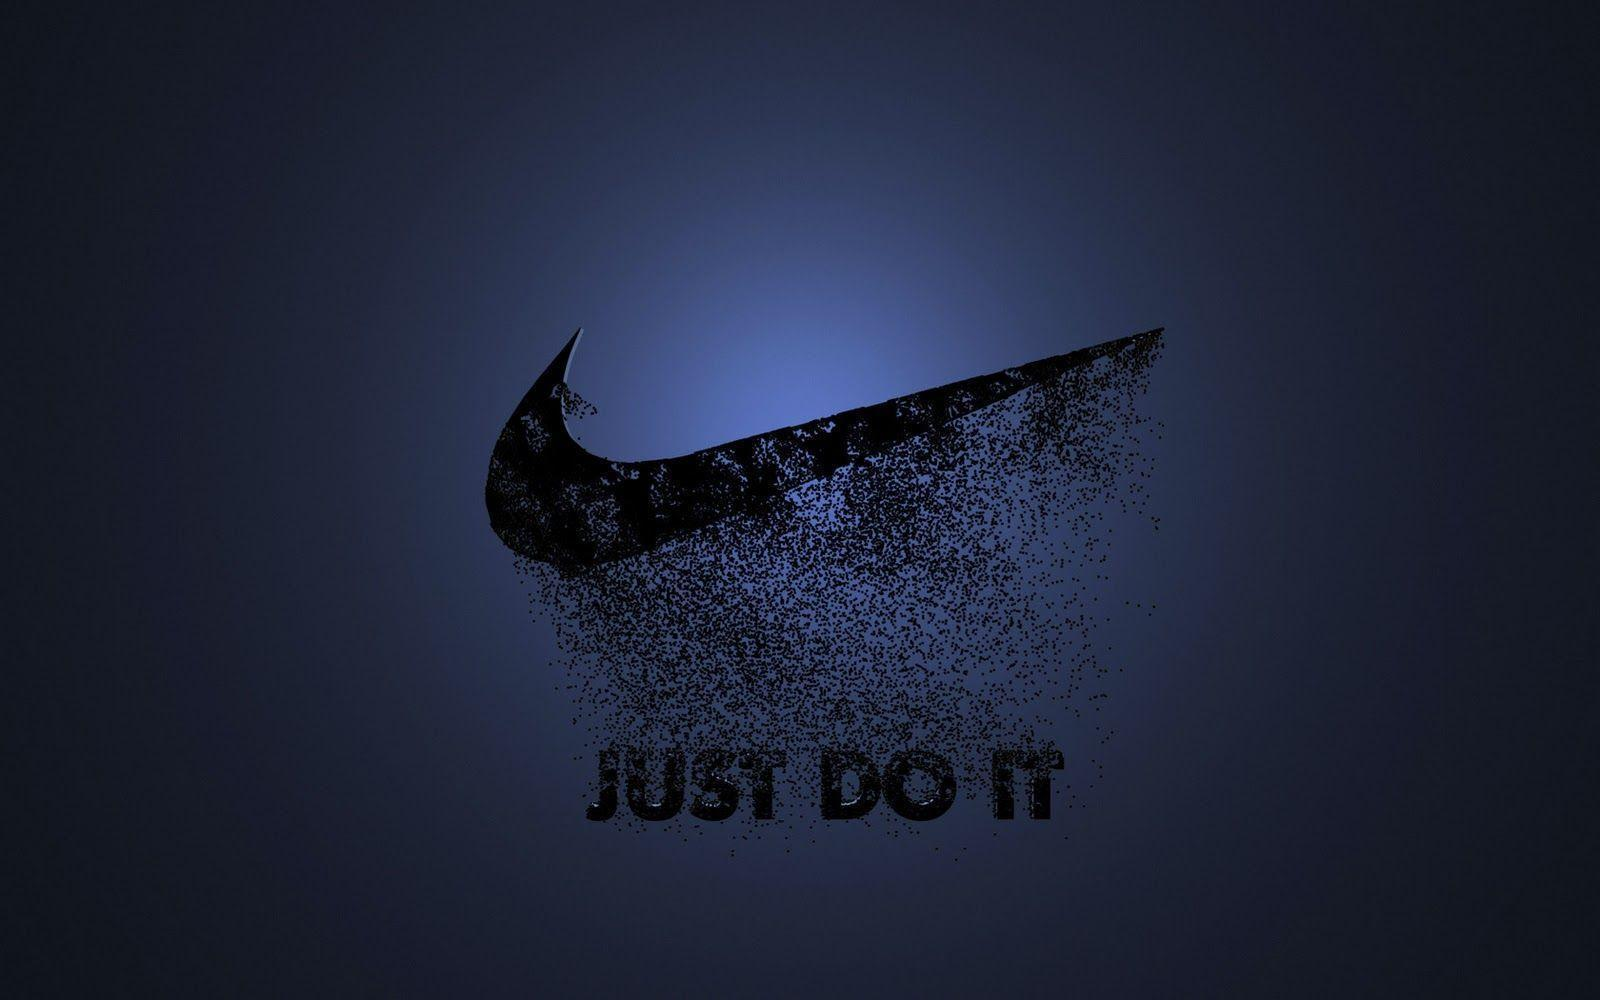 Nike Wallpapers Just Do It, wallpaper, Nike Wallpapers Just Do It hd